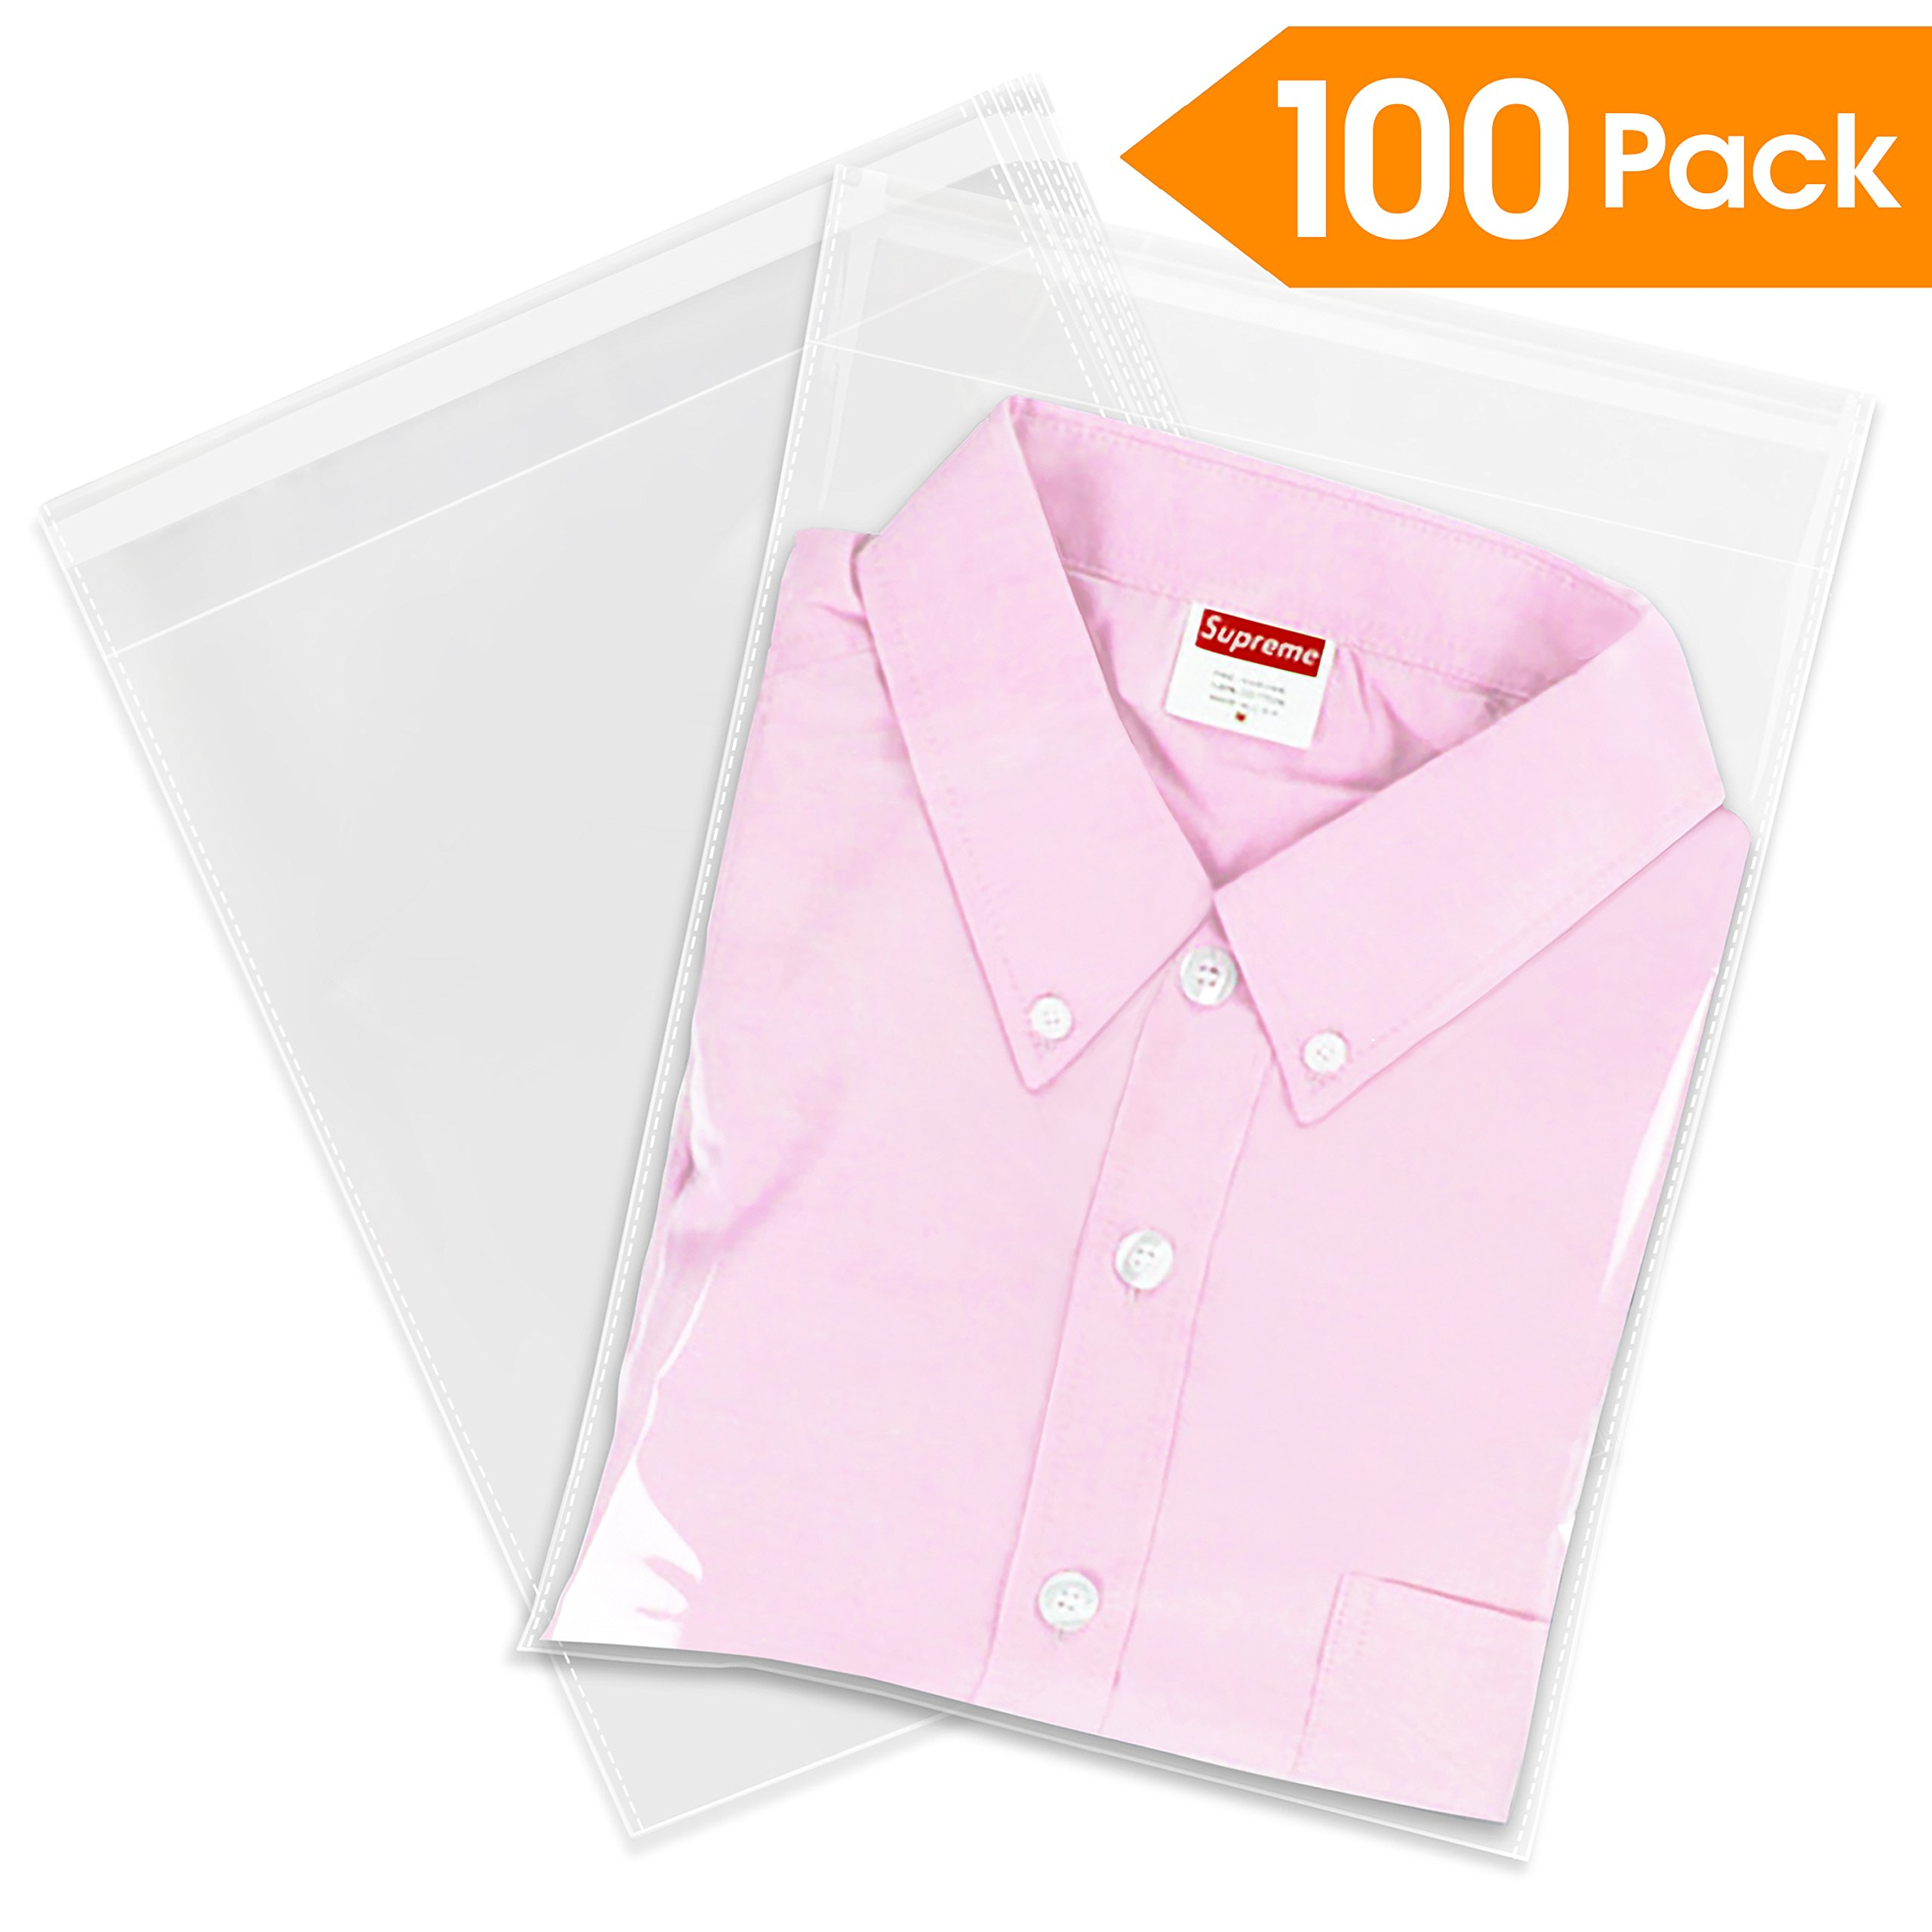 """100 Count - 12"""" X 15"""" Self Seal Clear Cello Cellophane Resealable Plastic Poly Bags - Perfect for Packaging Clothing, Shirts (More Sizes Available)"""